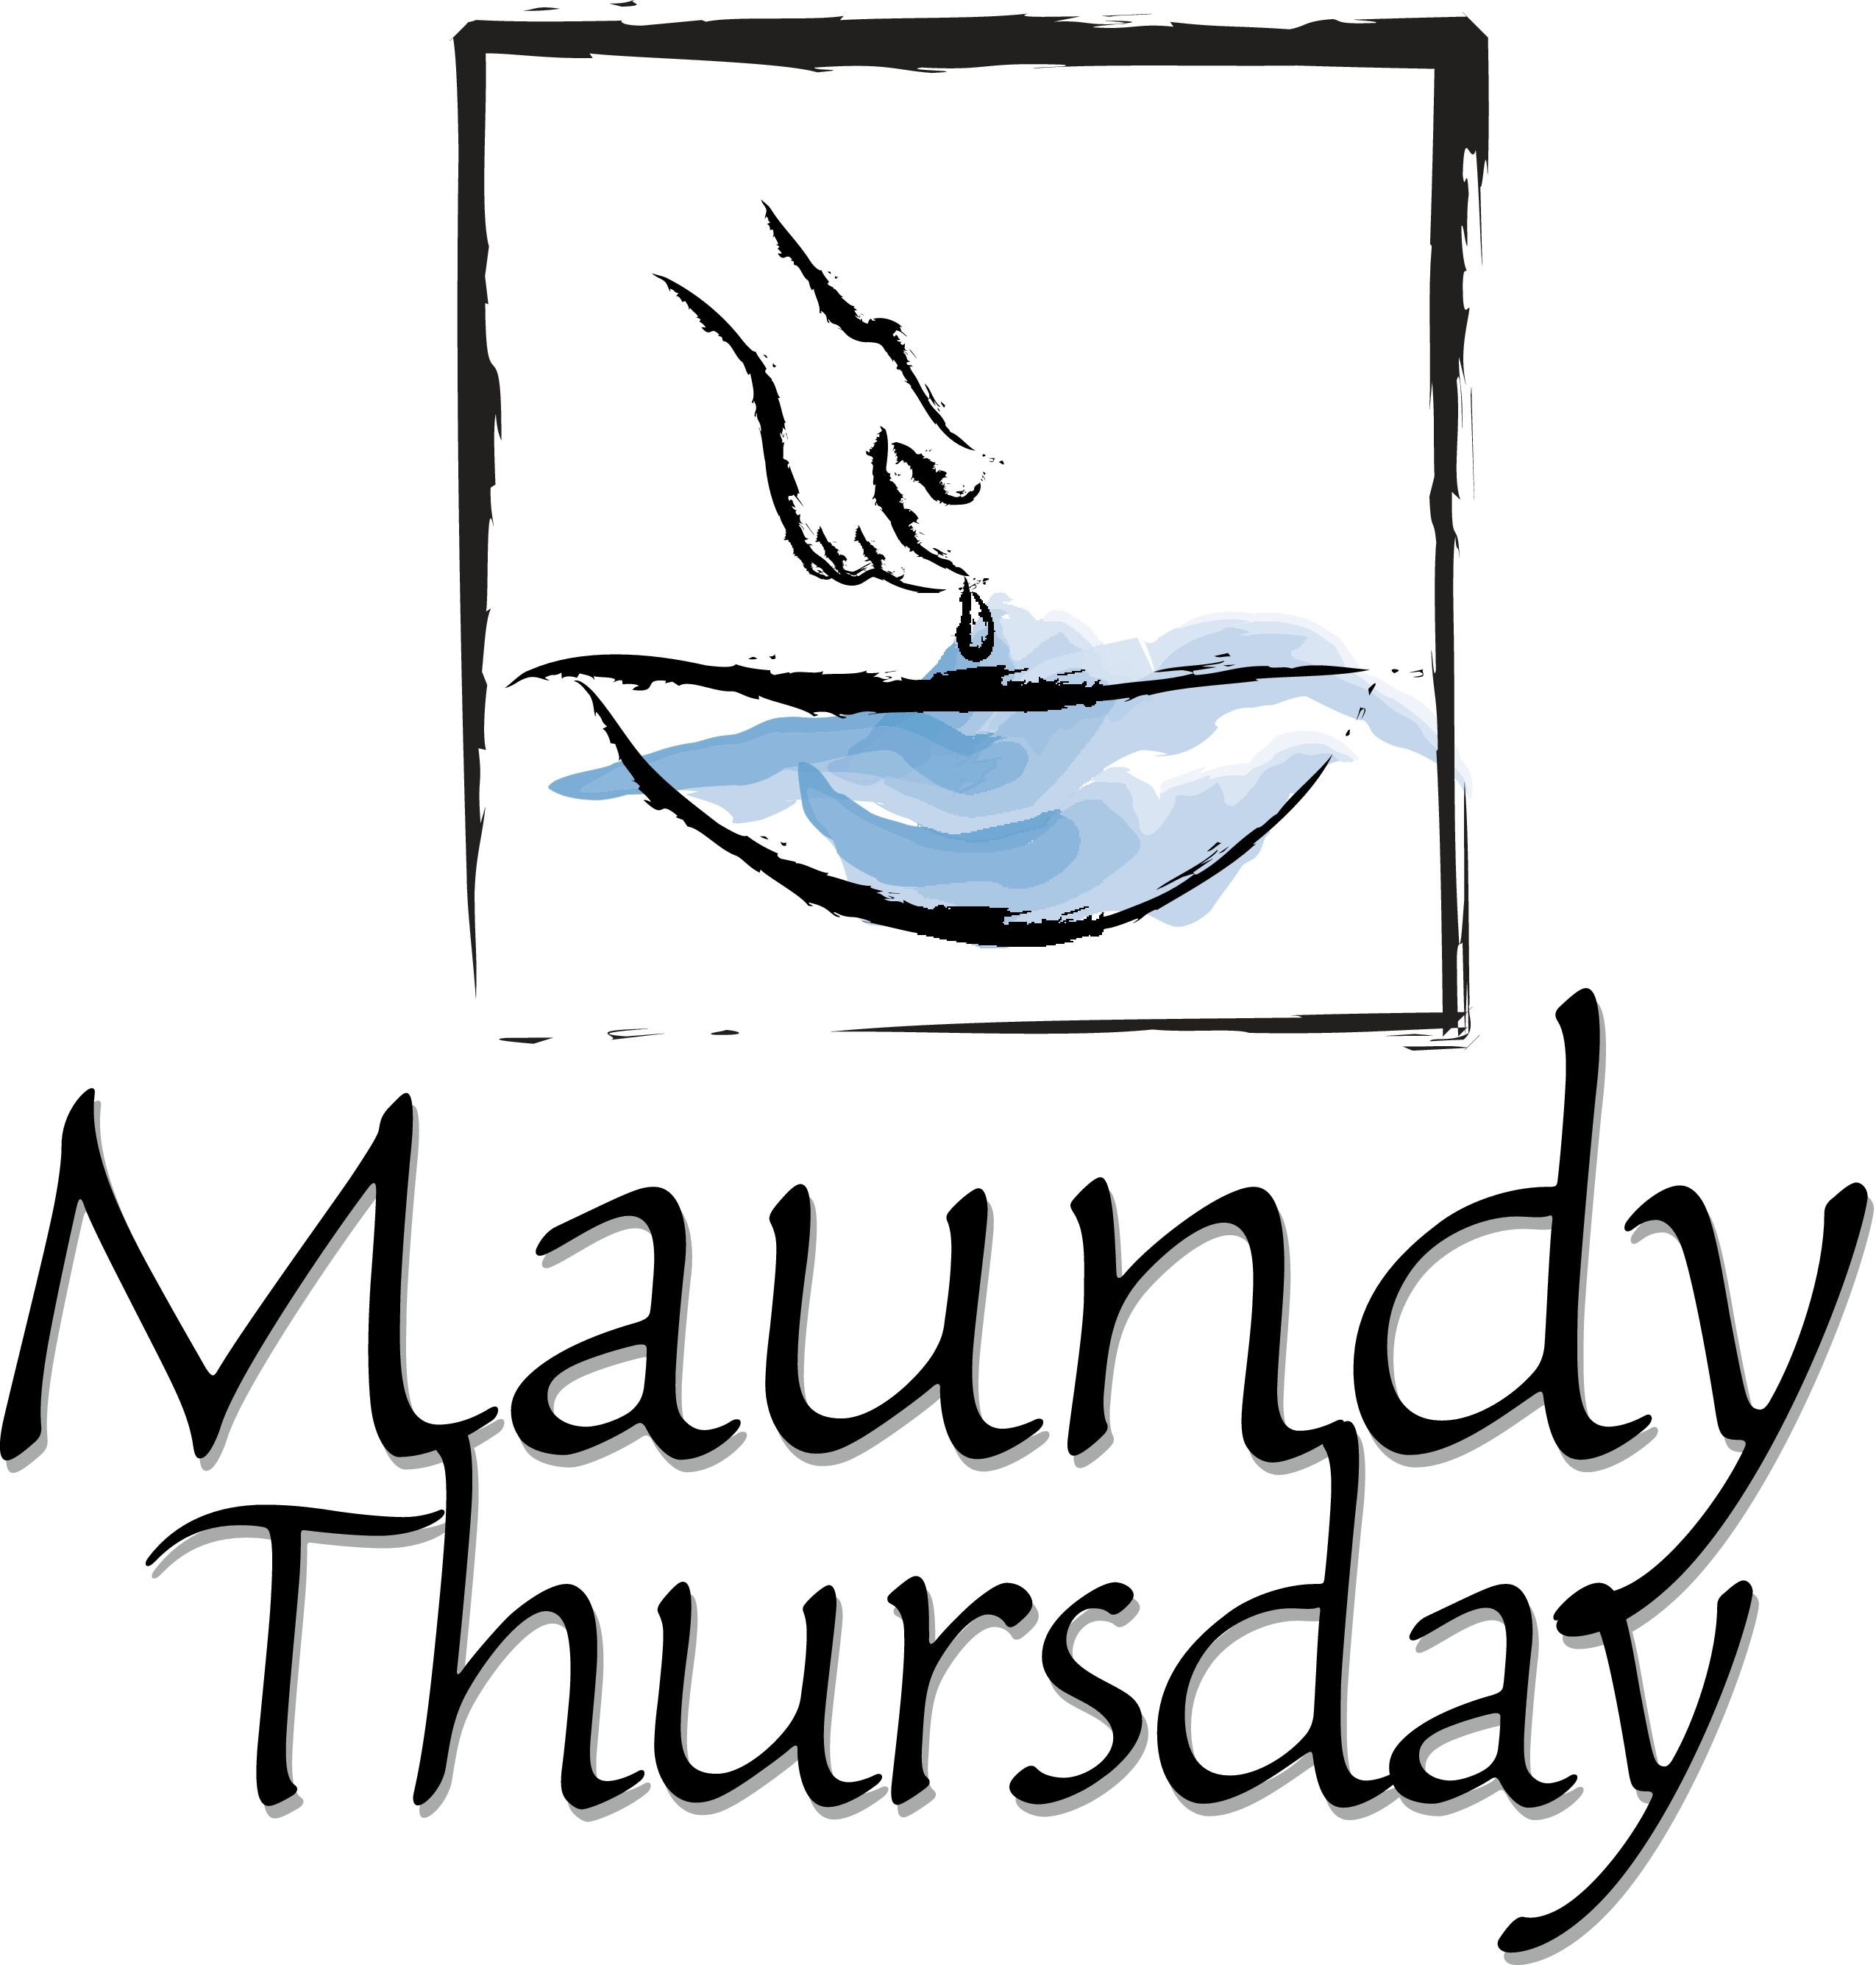 Images Of Maundy Thursday In Clip Art